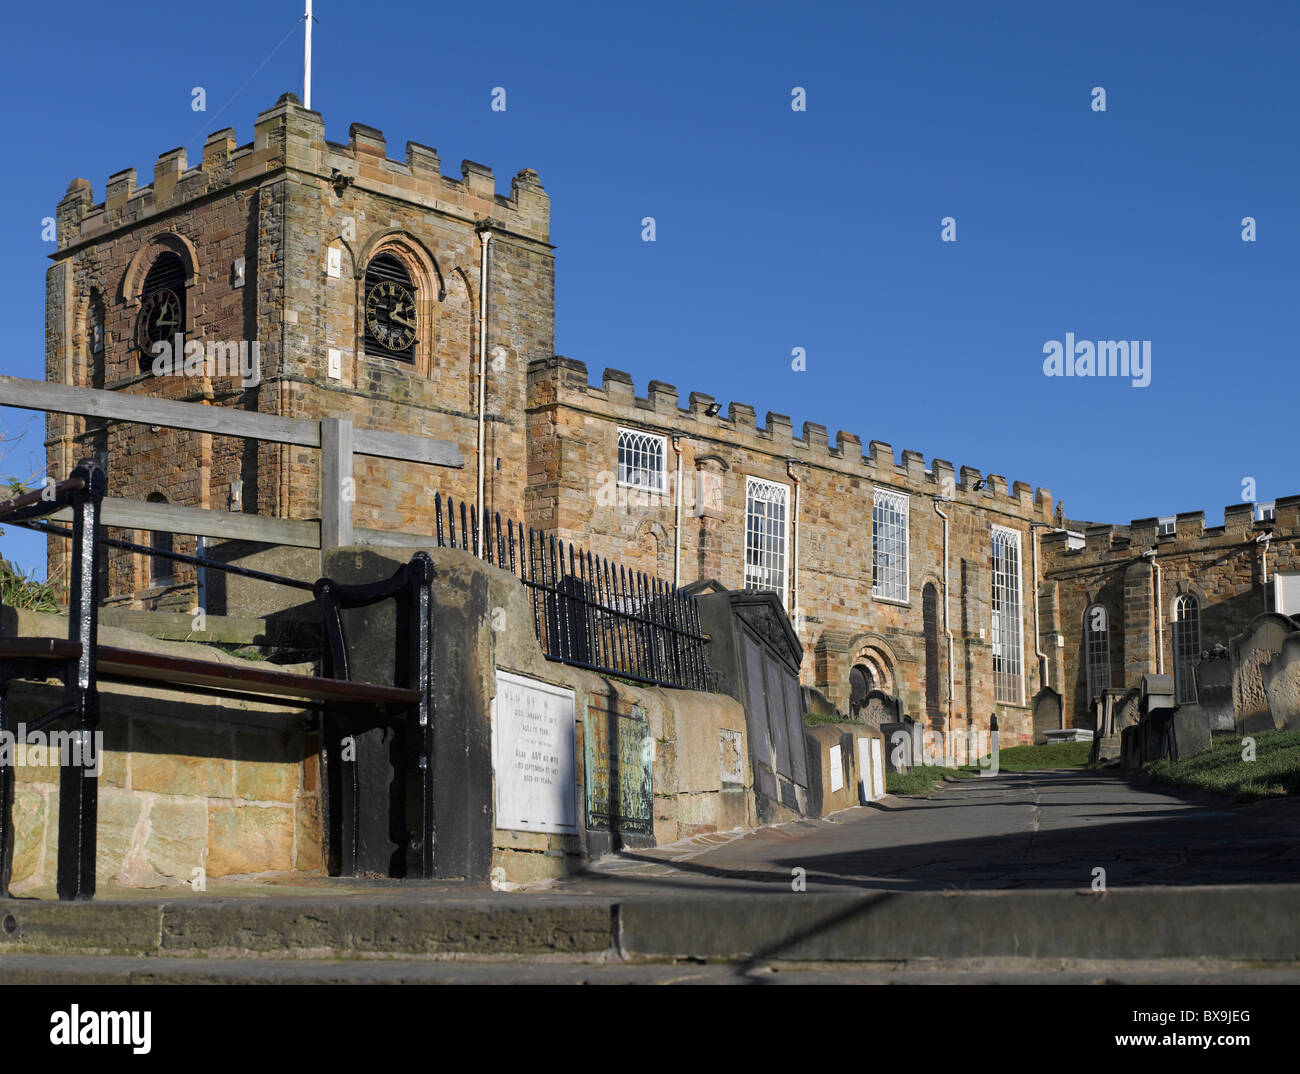 St Marys Church and graveyard East Cliff Whitby North Yorkshire England UK United Kingdom GB Great Britain Stock Photo